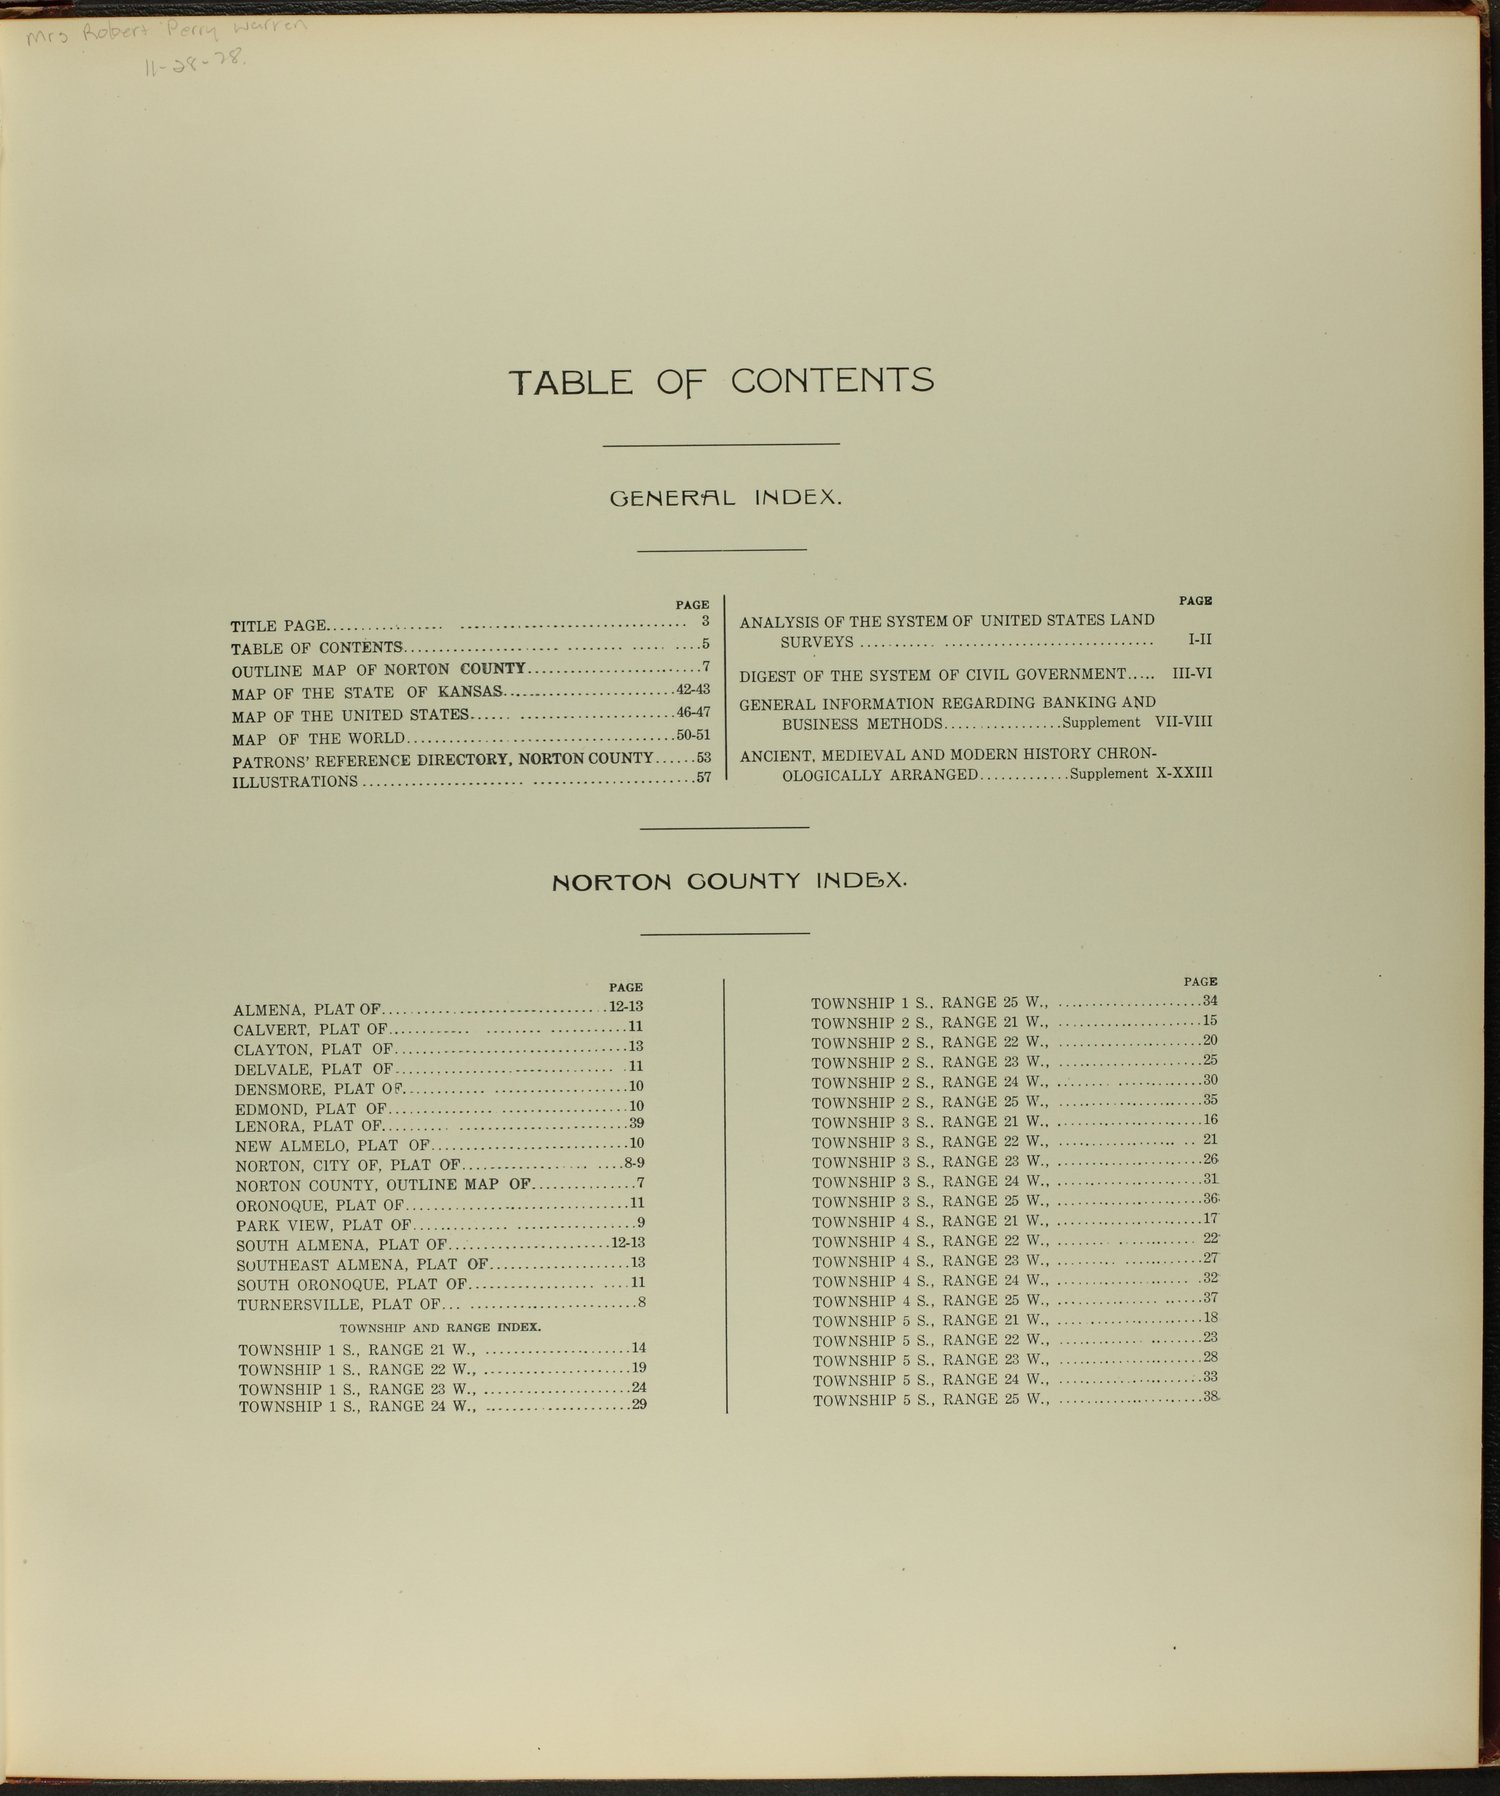 Standard atlas of Norton County, Kansas - Table of Contents